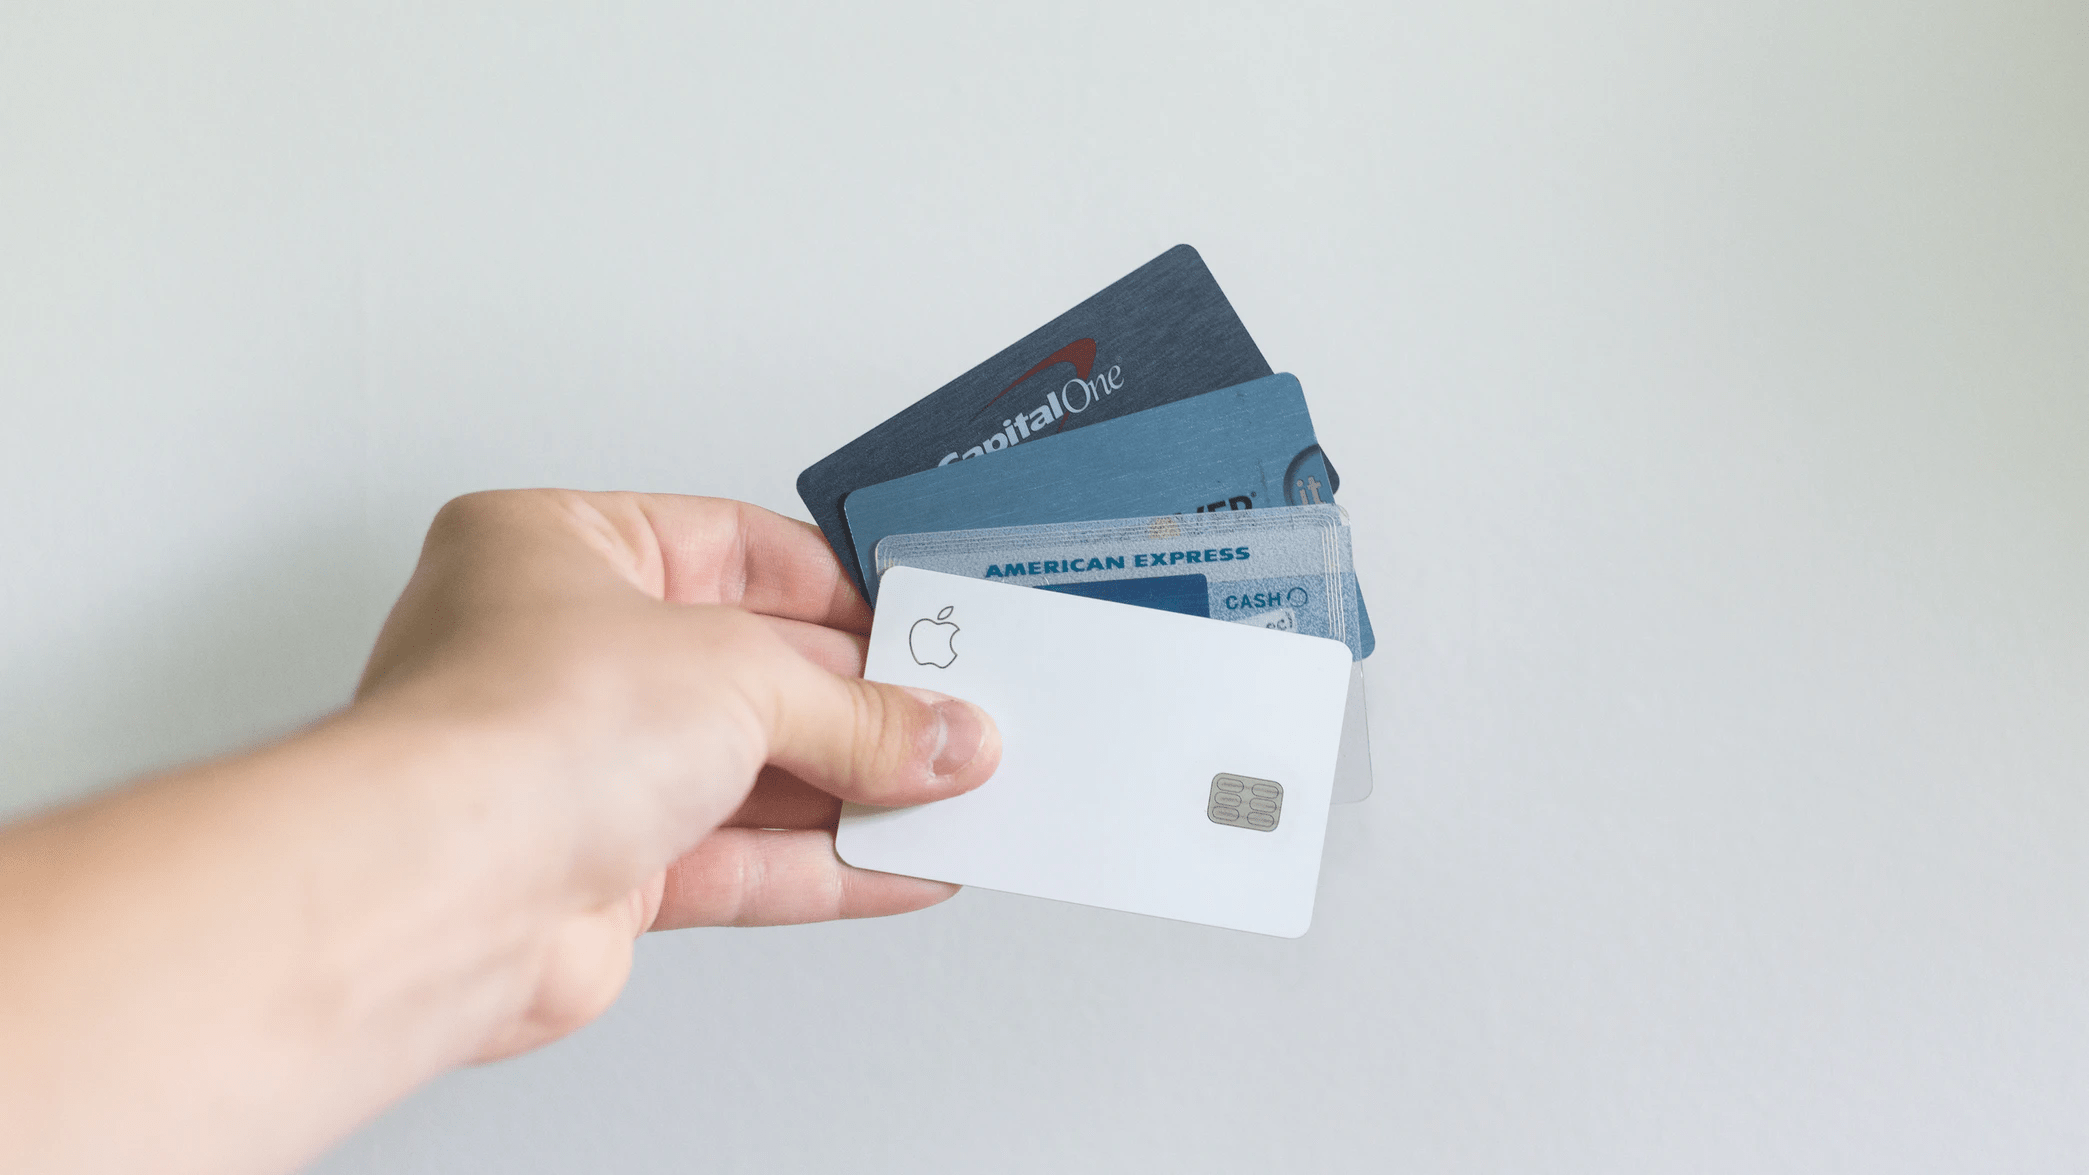 How Business Card Can Keep Your Cash Flow